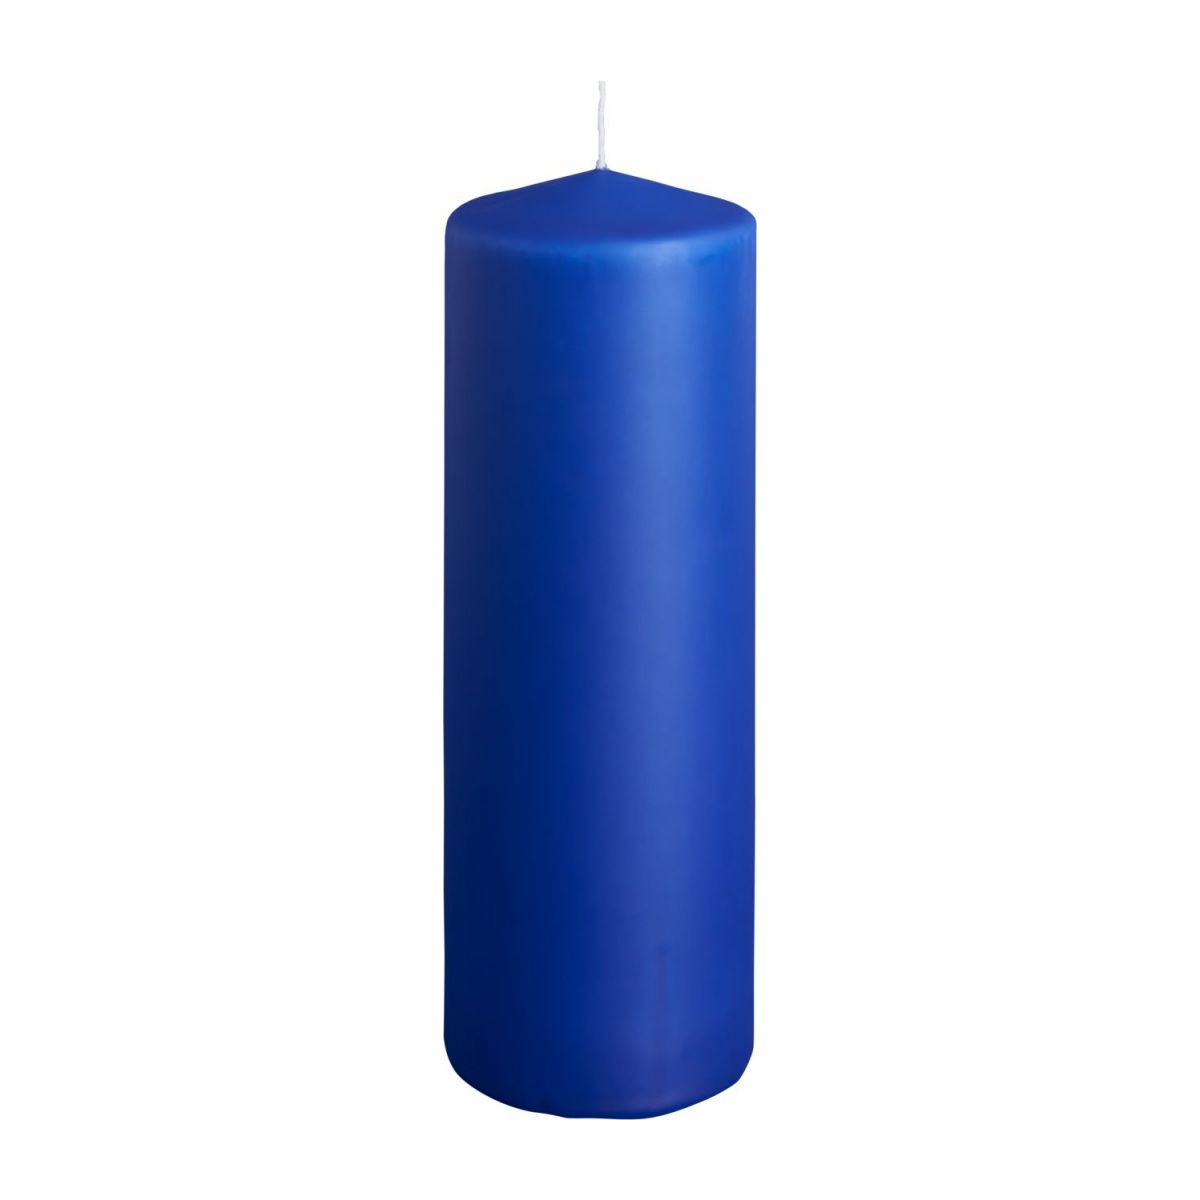 Cylindrical candle 19cm, blue n°1